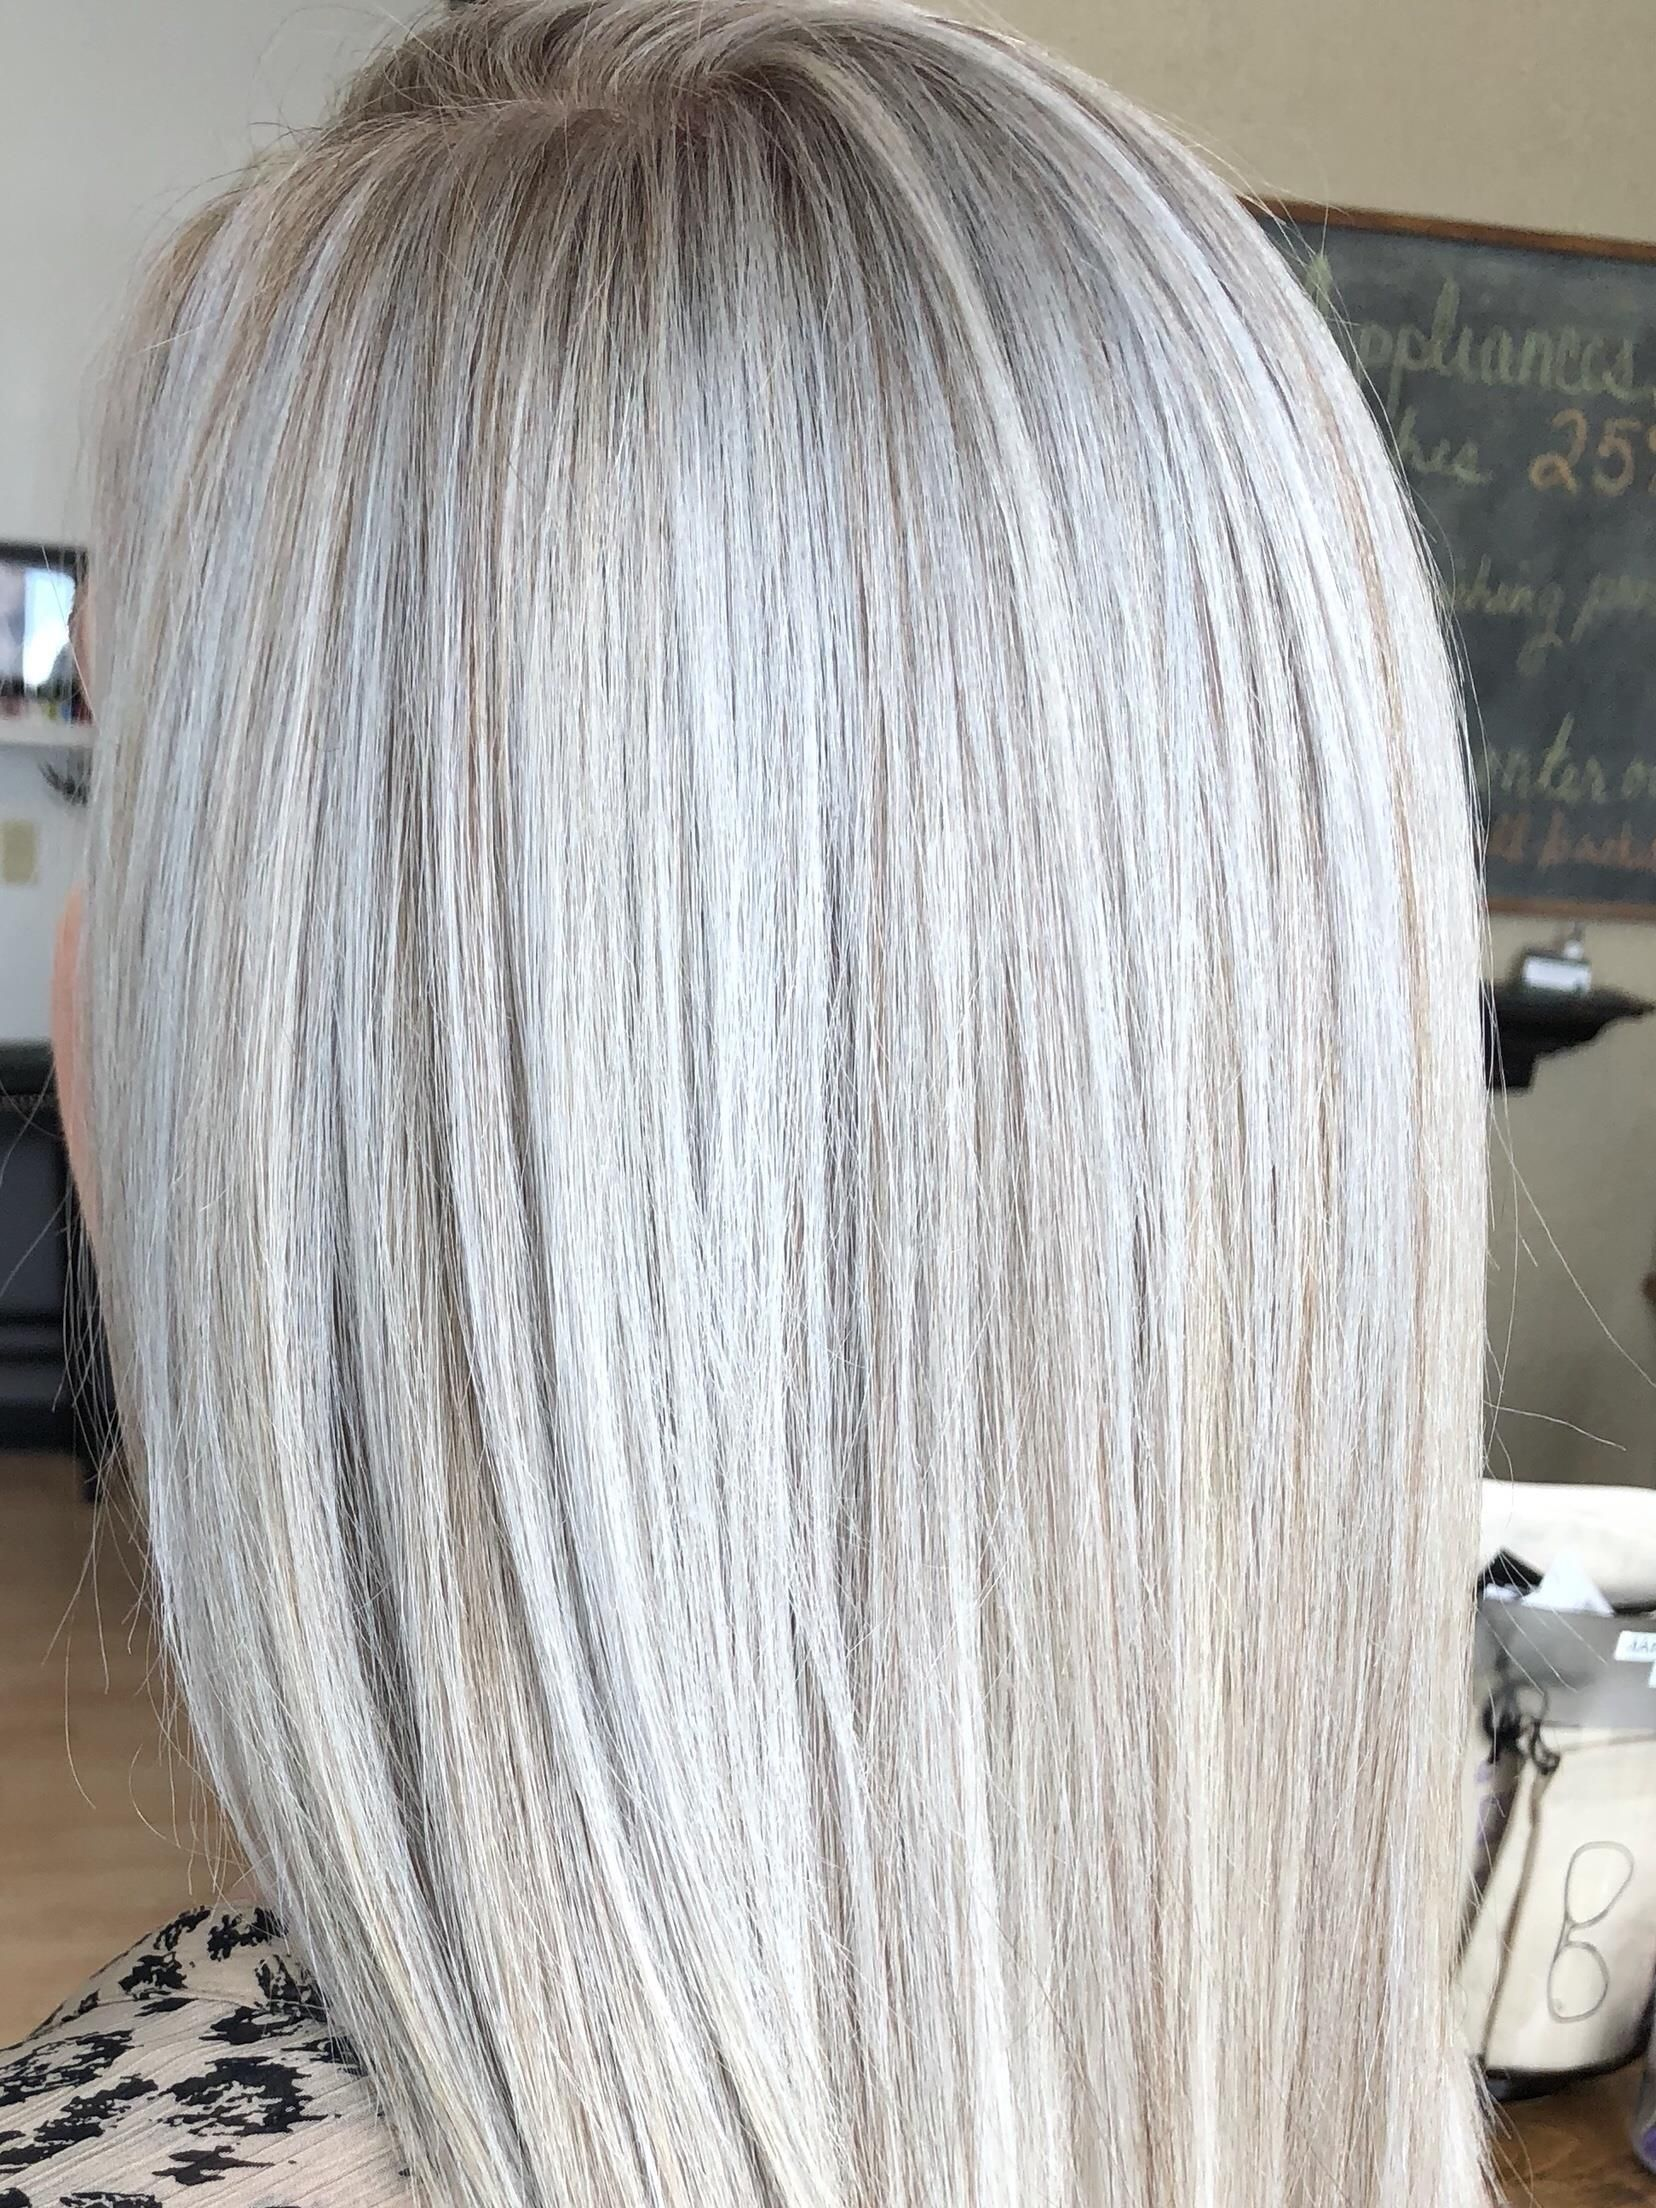 Toner 25 Icy Toner Add On Hair Toner Silver Hair Grey